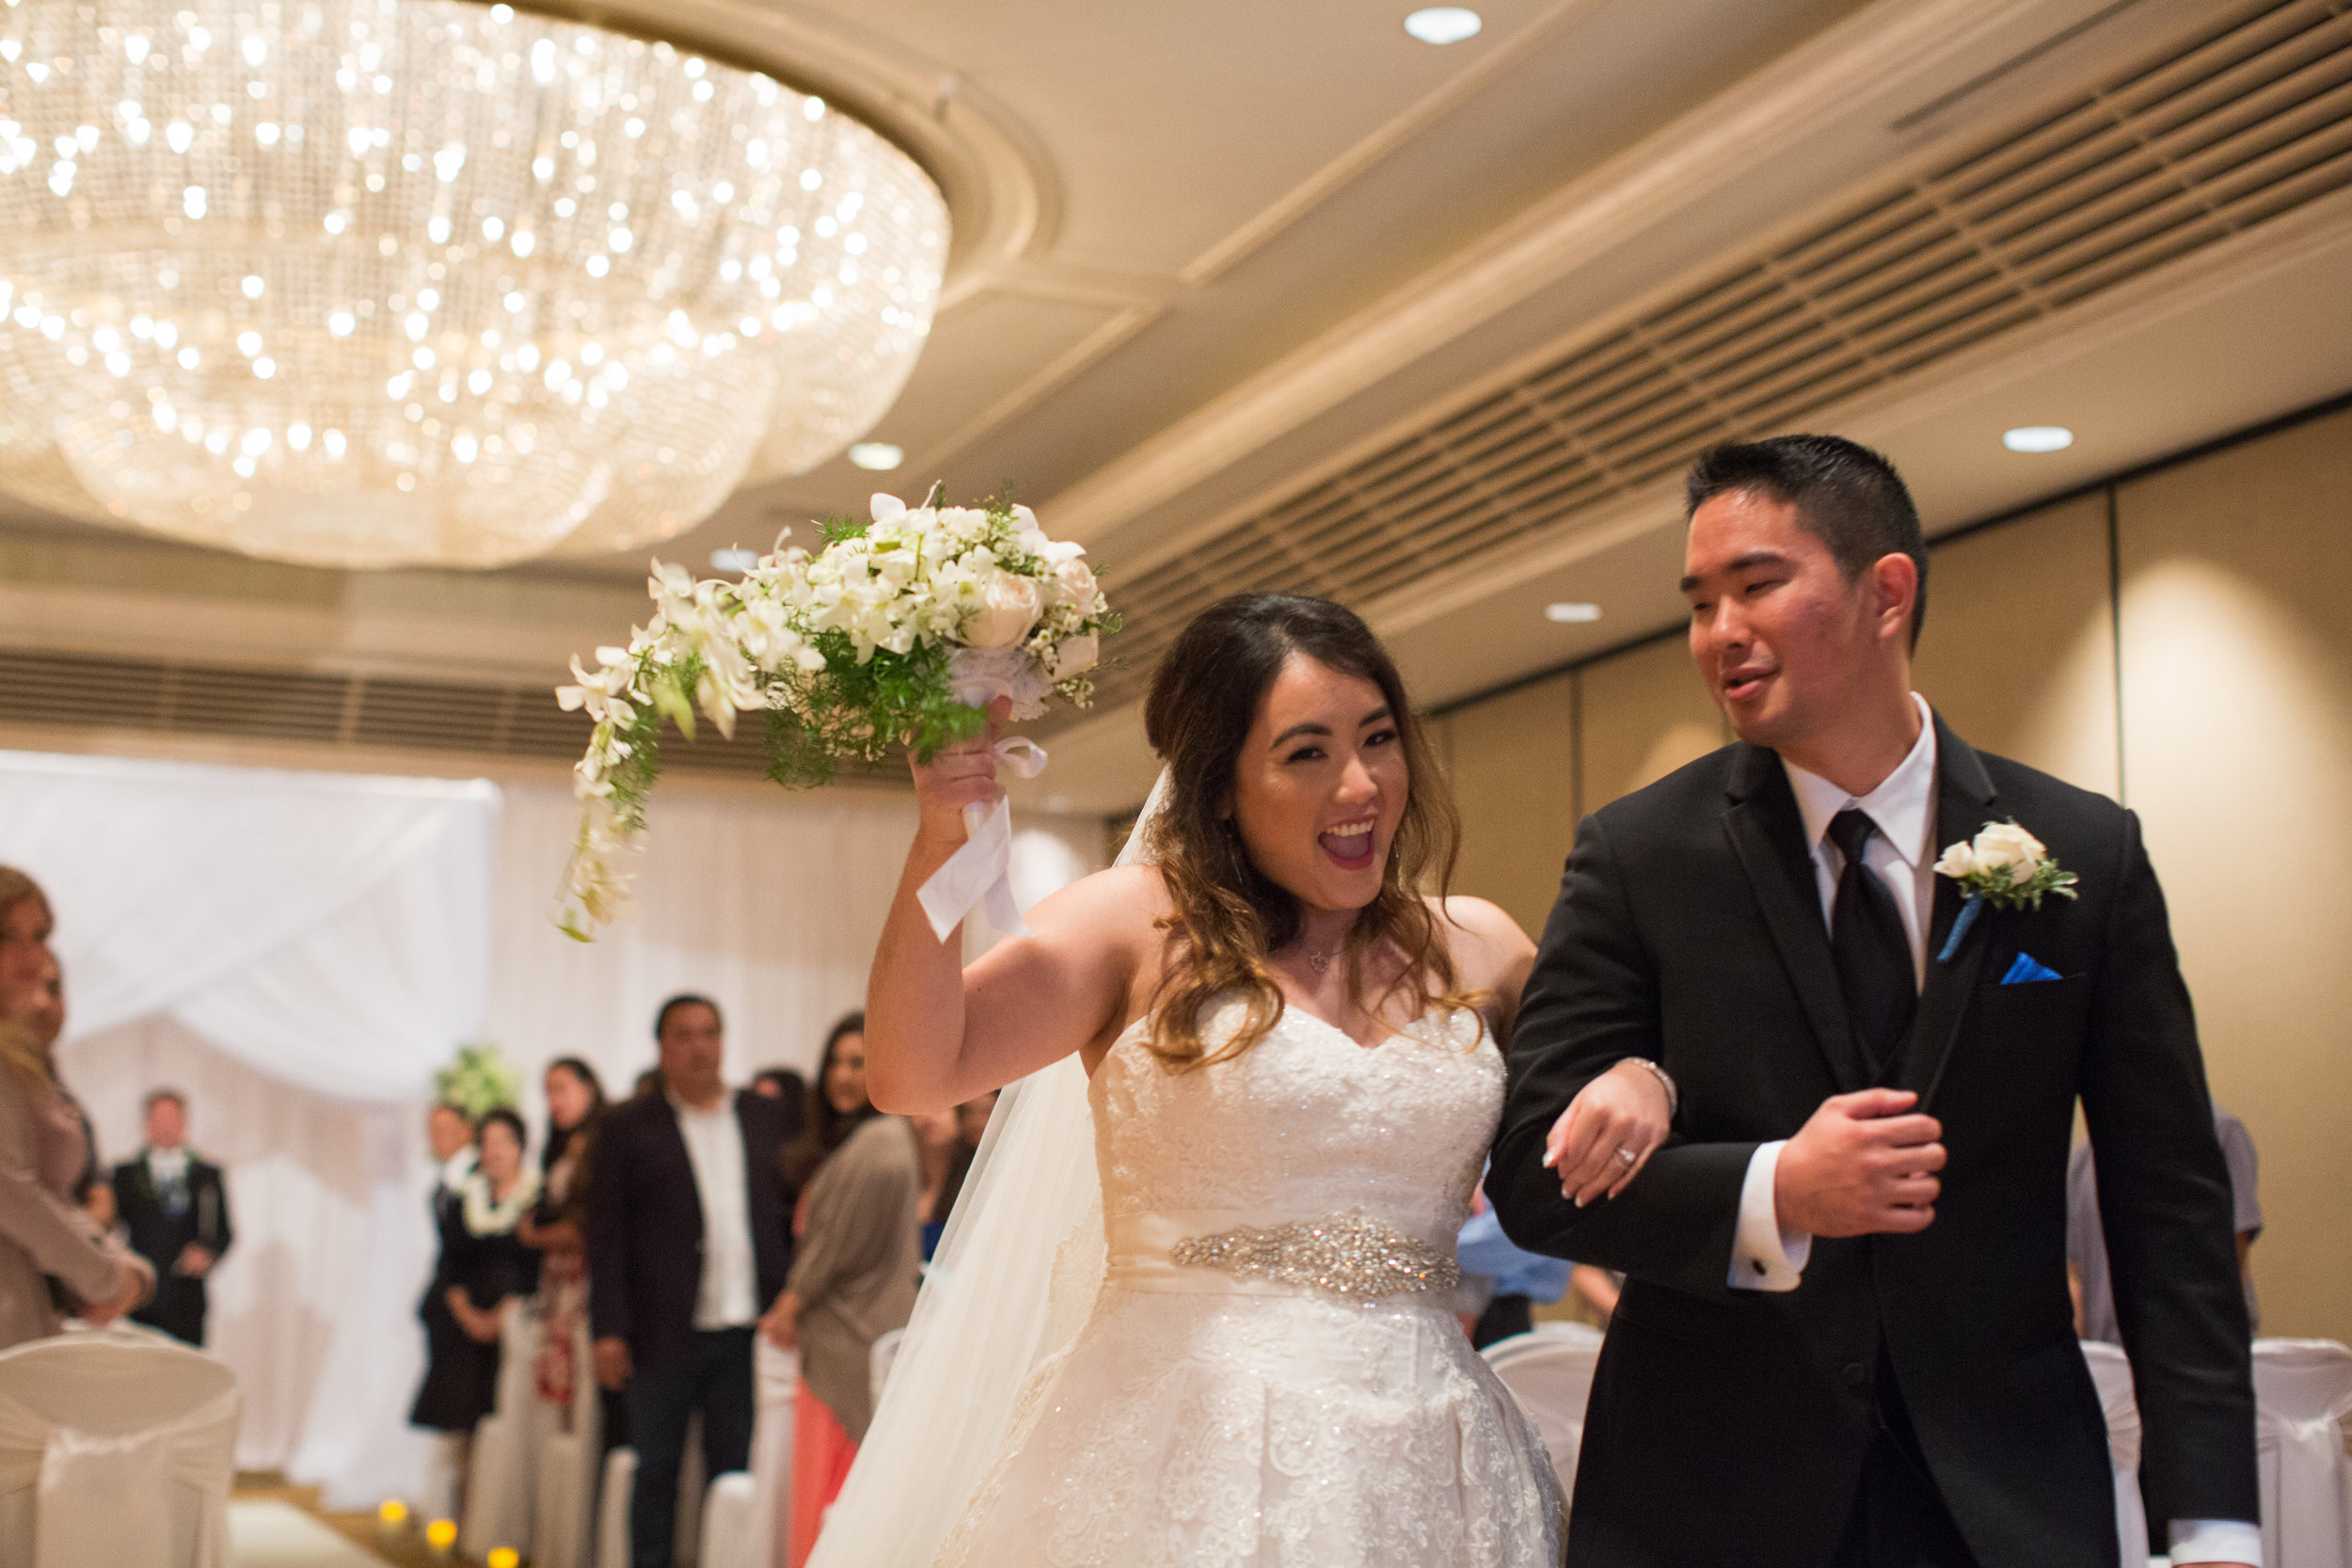 19-hyatt-regency-wedding-ceremony.jpg